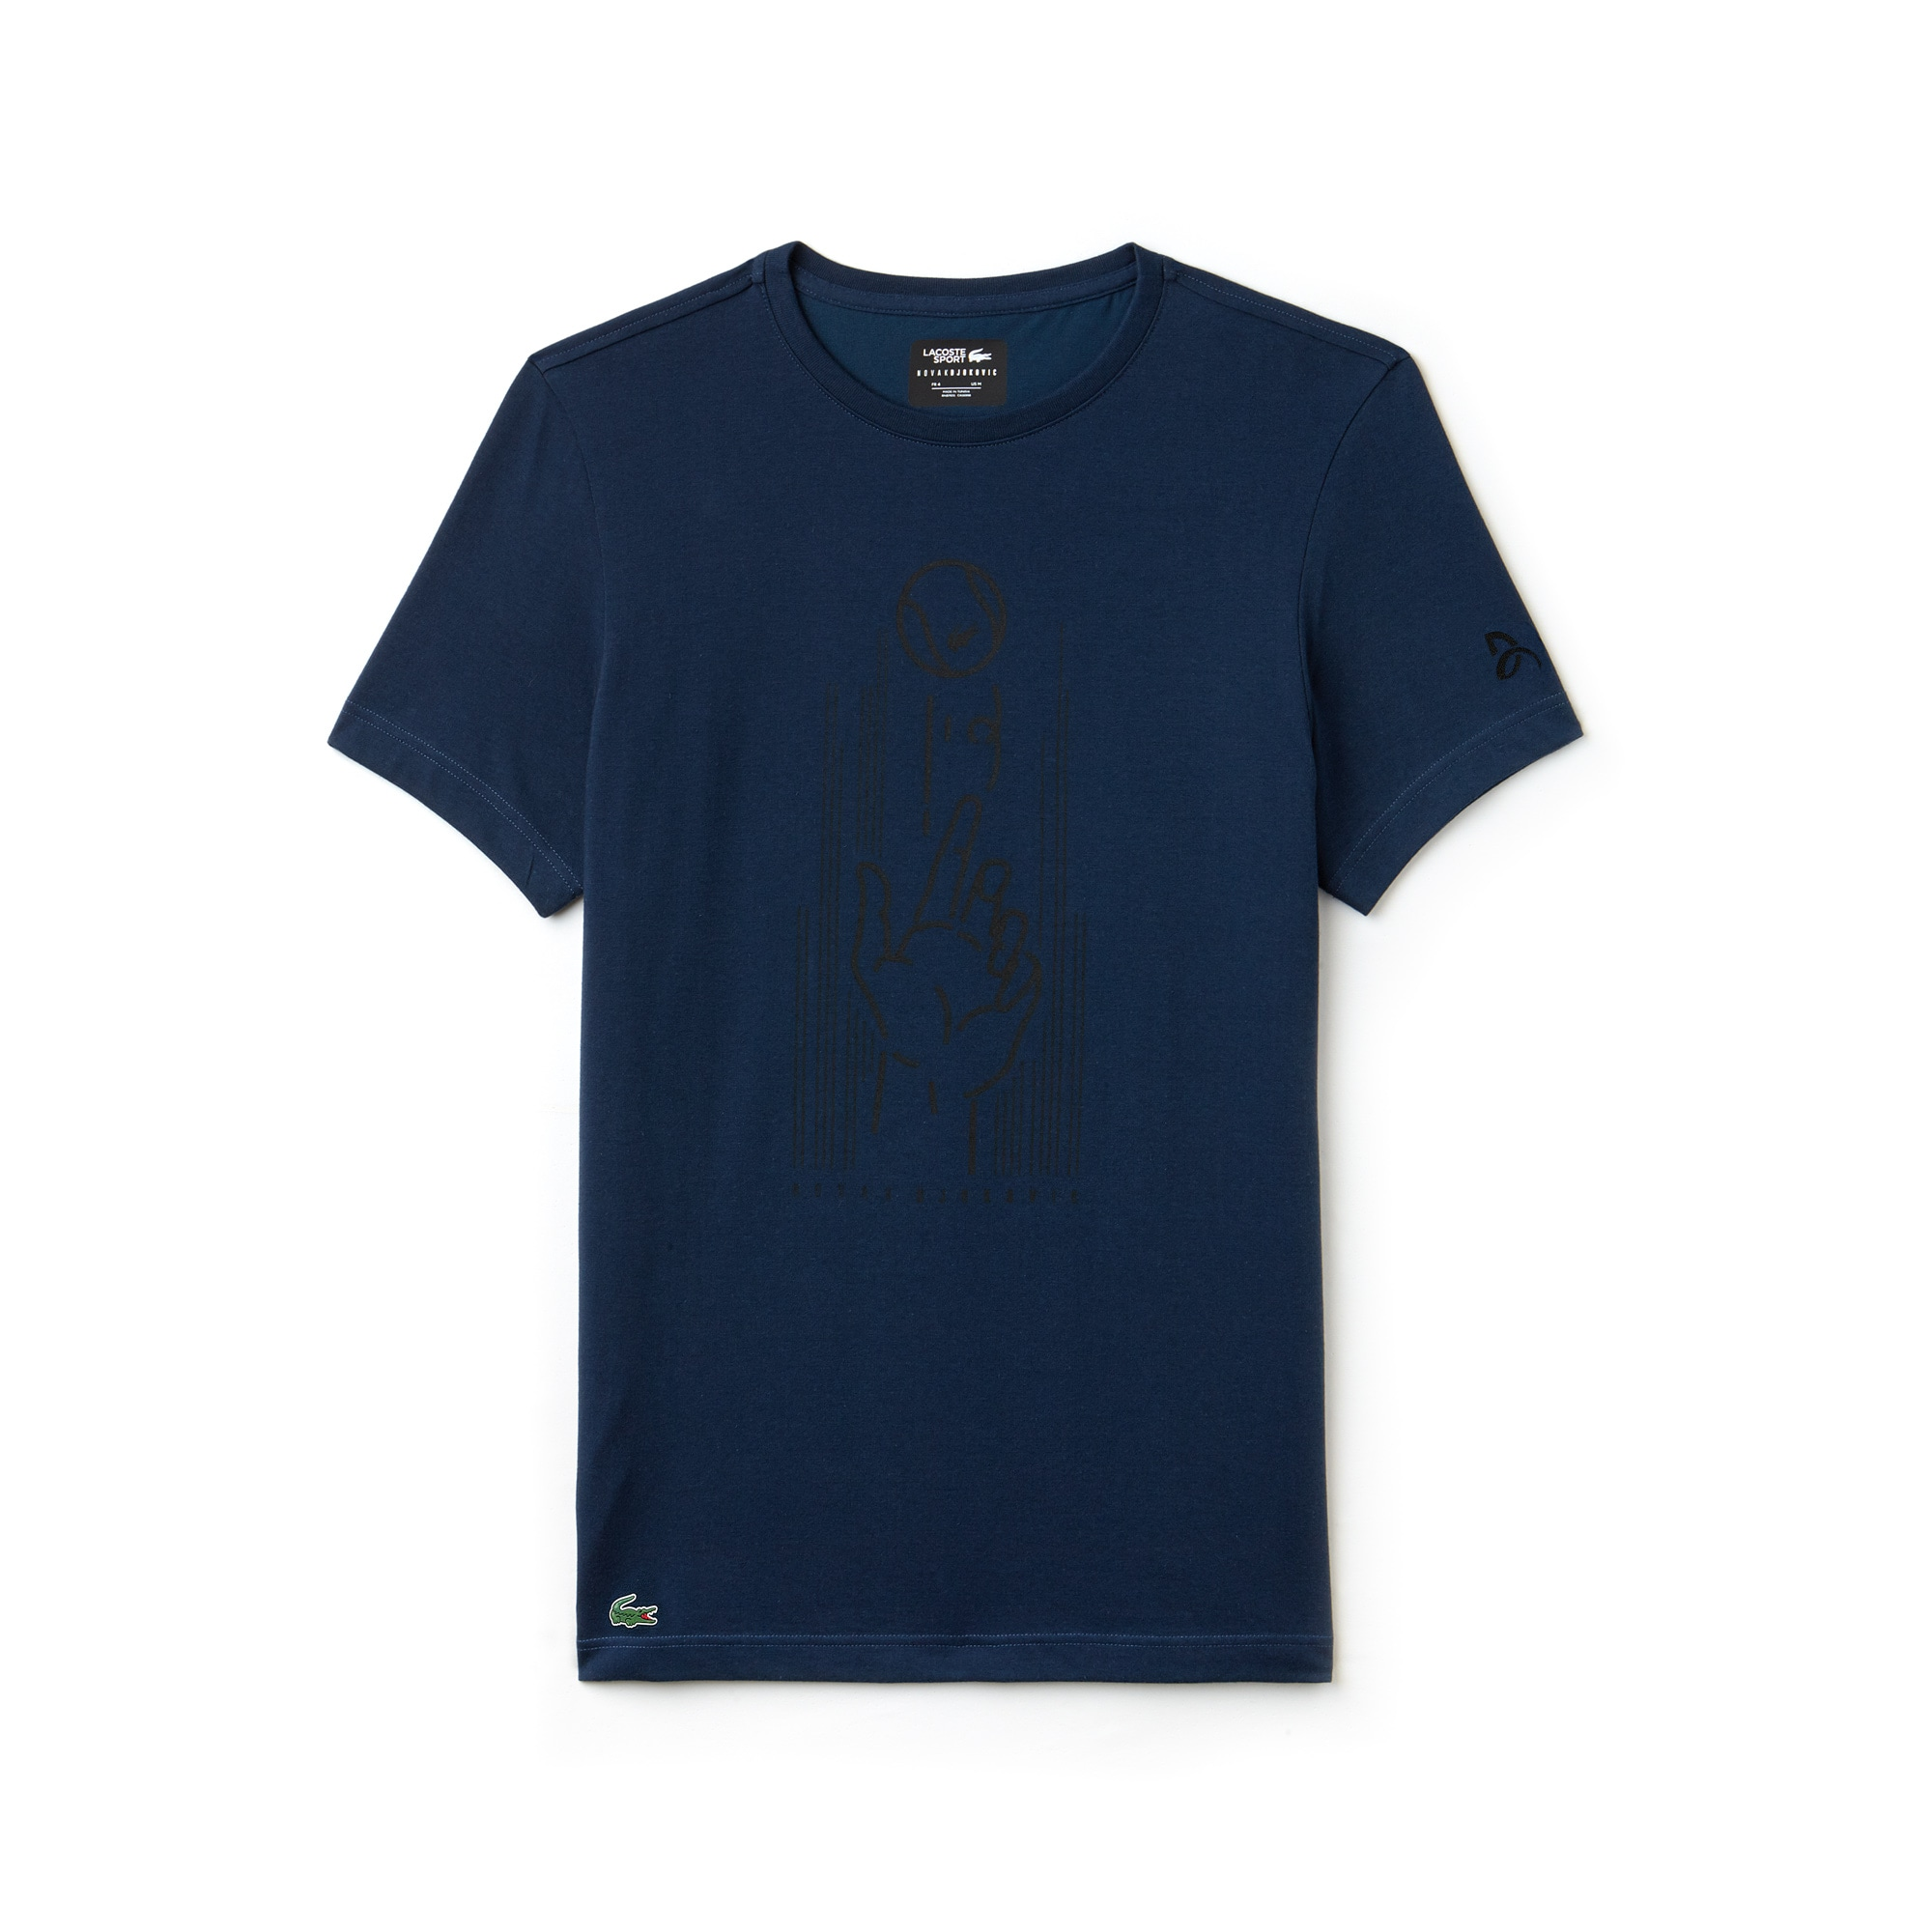 Men's SPORT Crew Neck Print Technical Jersey T-shirt - Lacoste x Novak Djokovic Support With Style - Off Court Collection